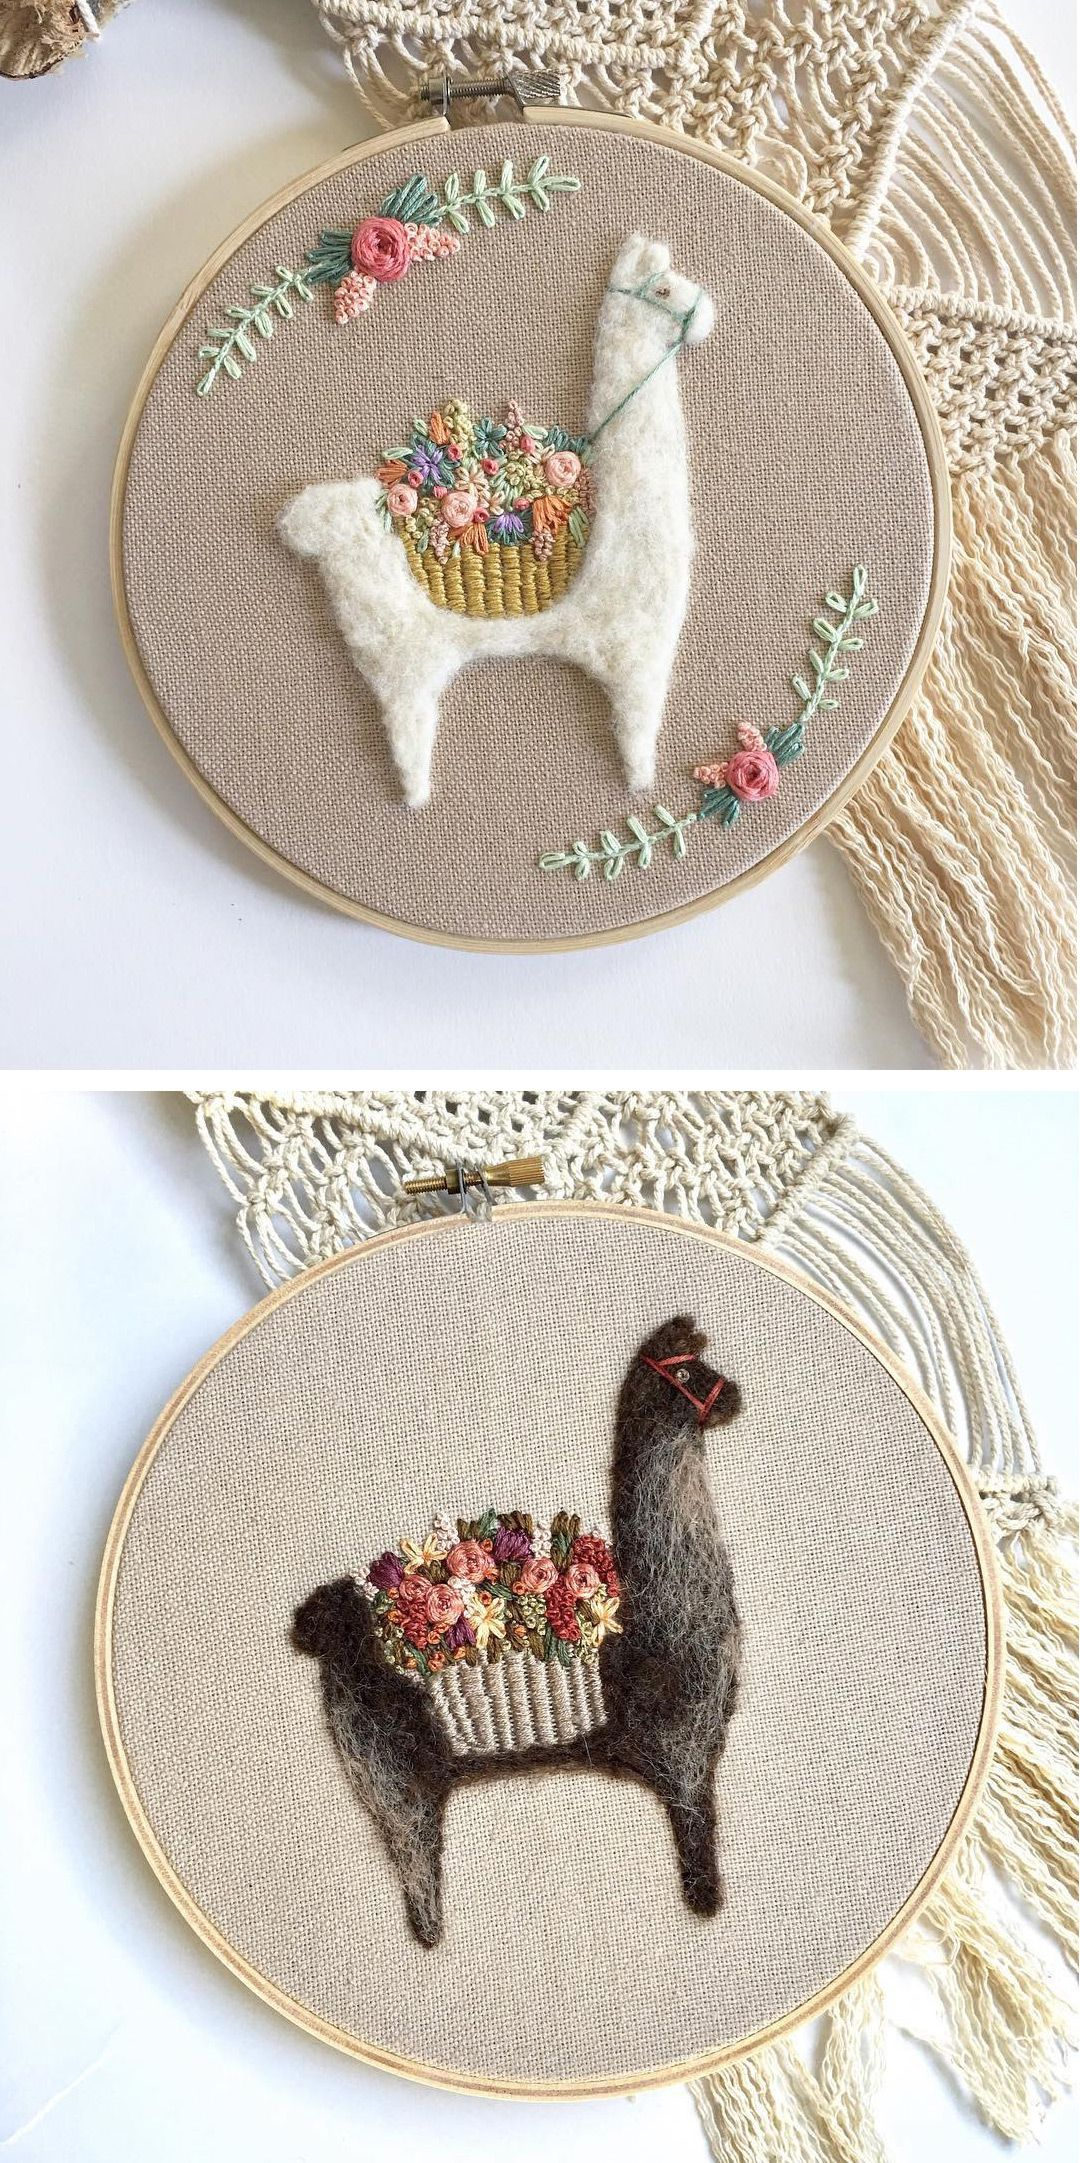 Needle Felted Llamas Carry Beautiful Embroidered Blooms on Their ...